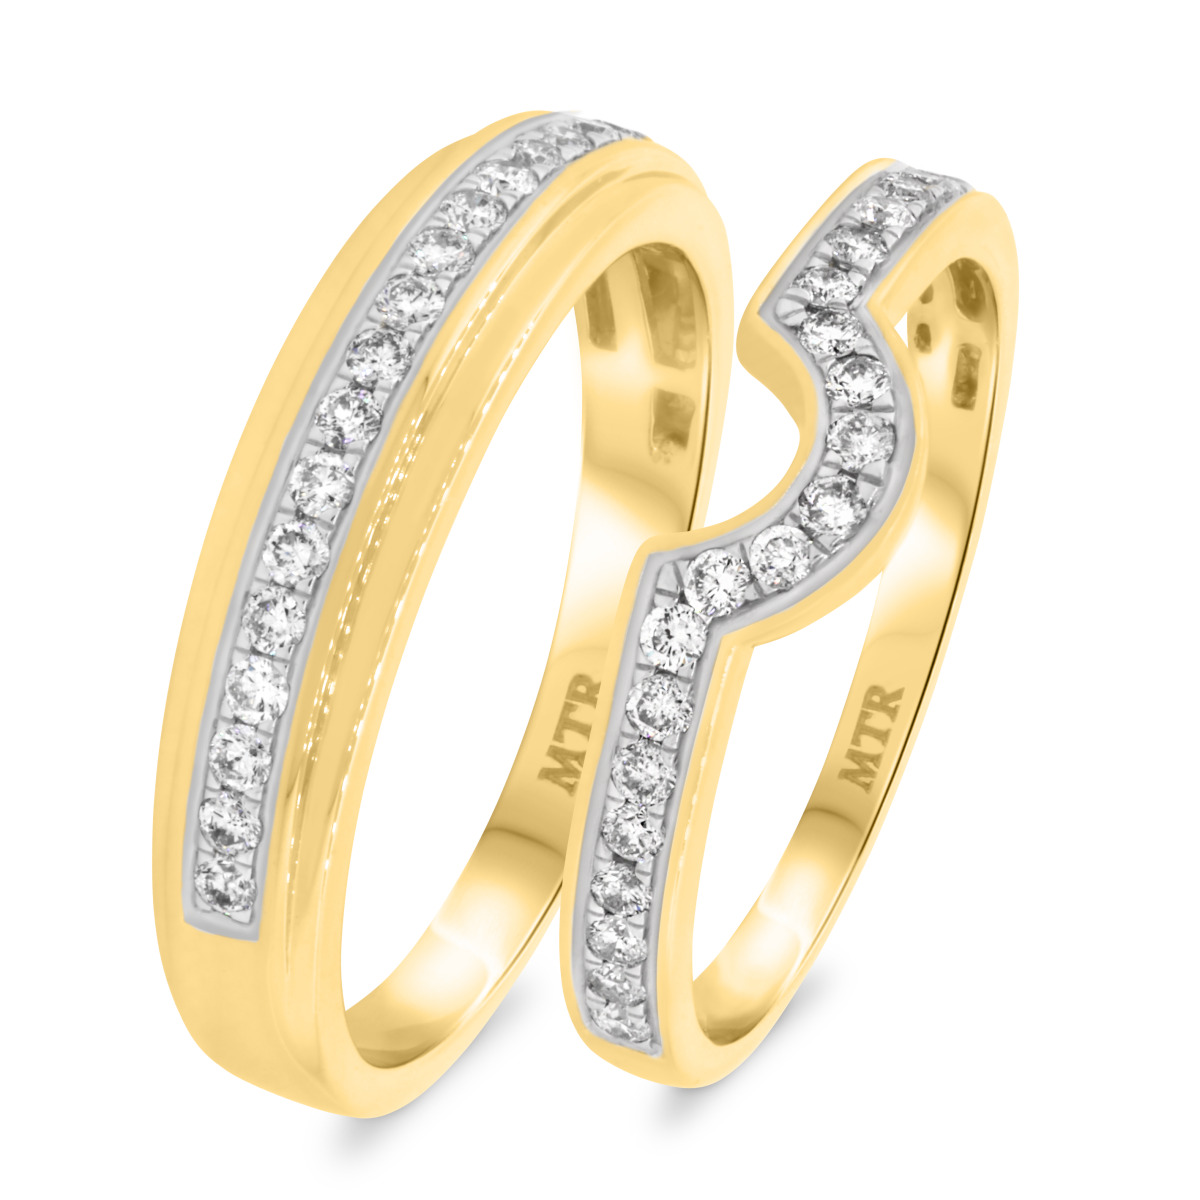 1/2 Carat T.W. Diamond Matching Wedding Band Set 10K Yellow Gold